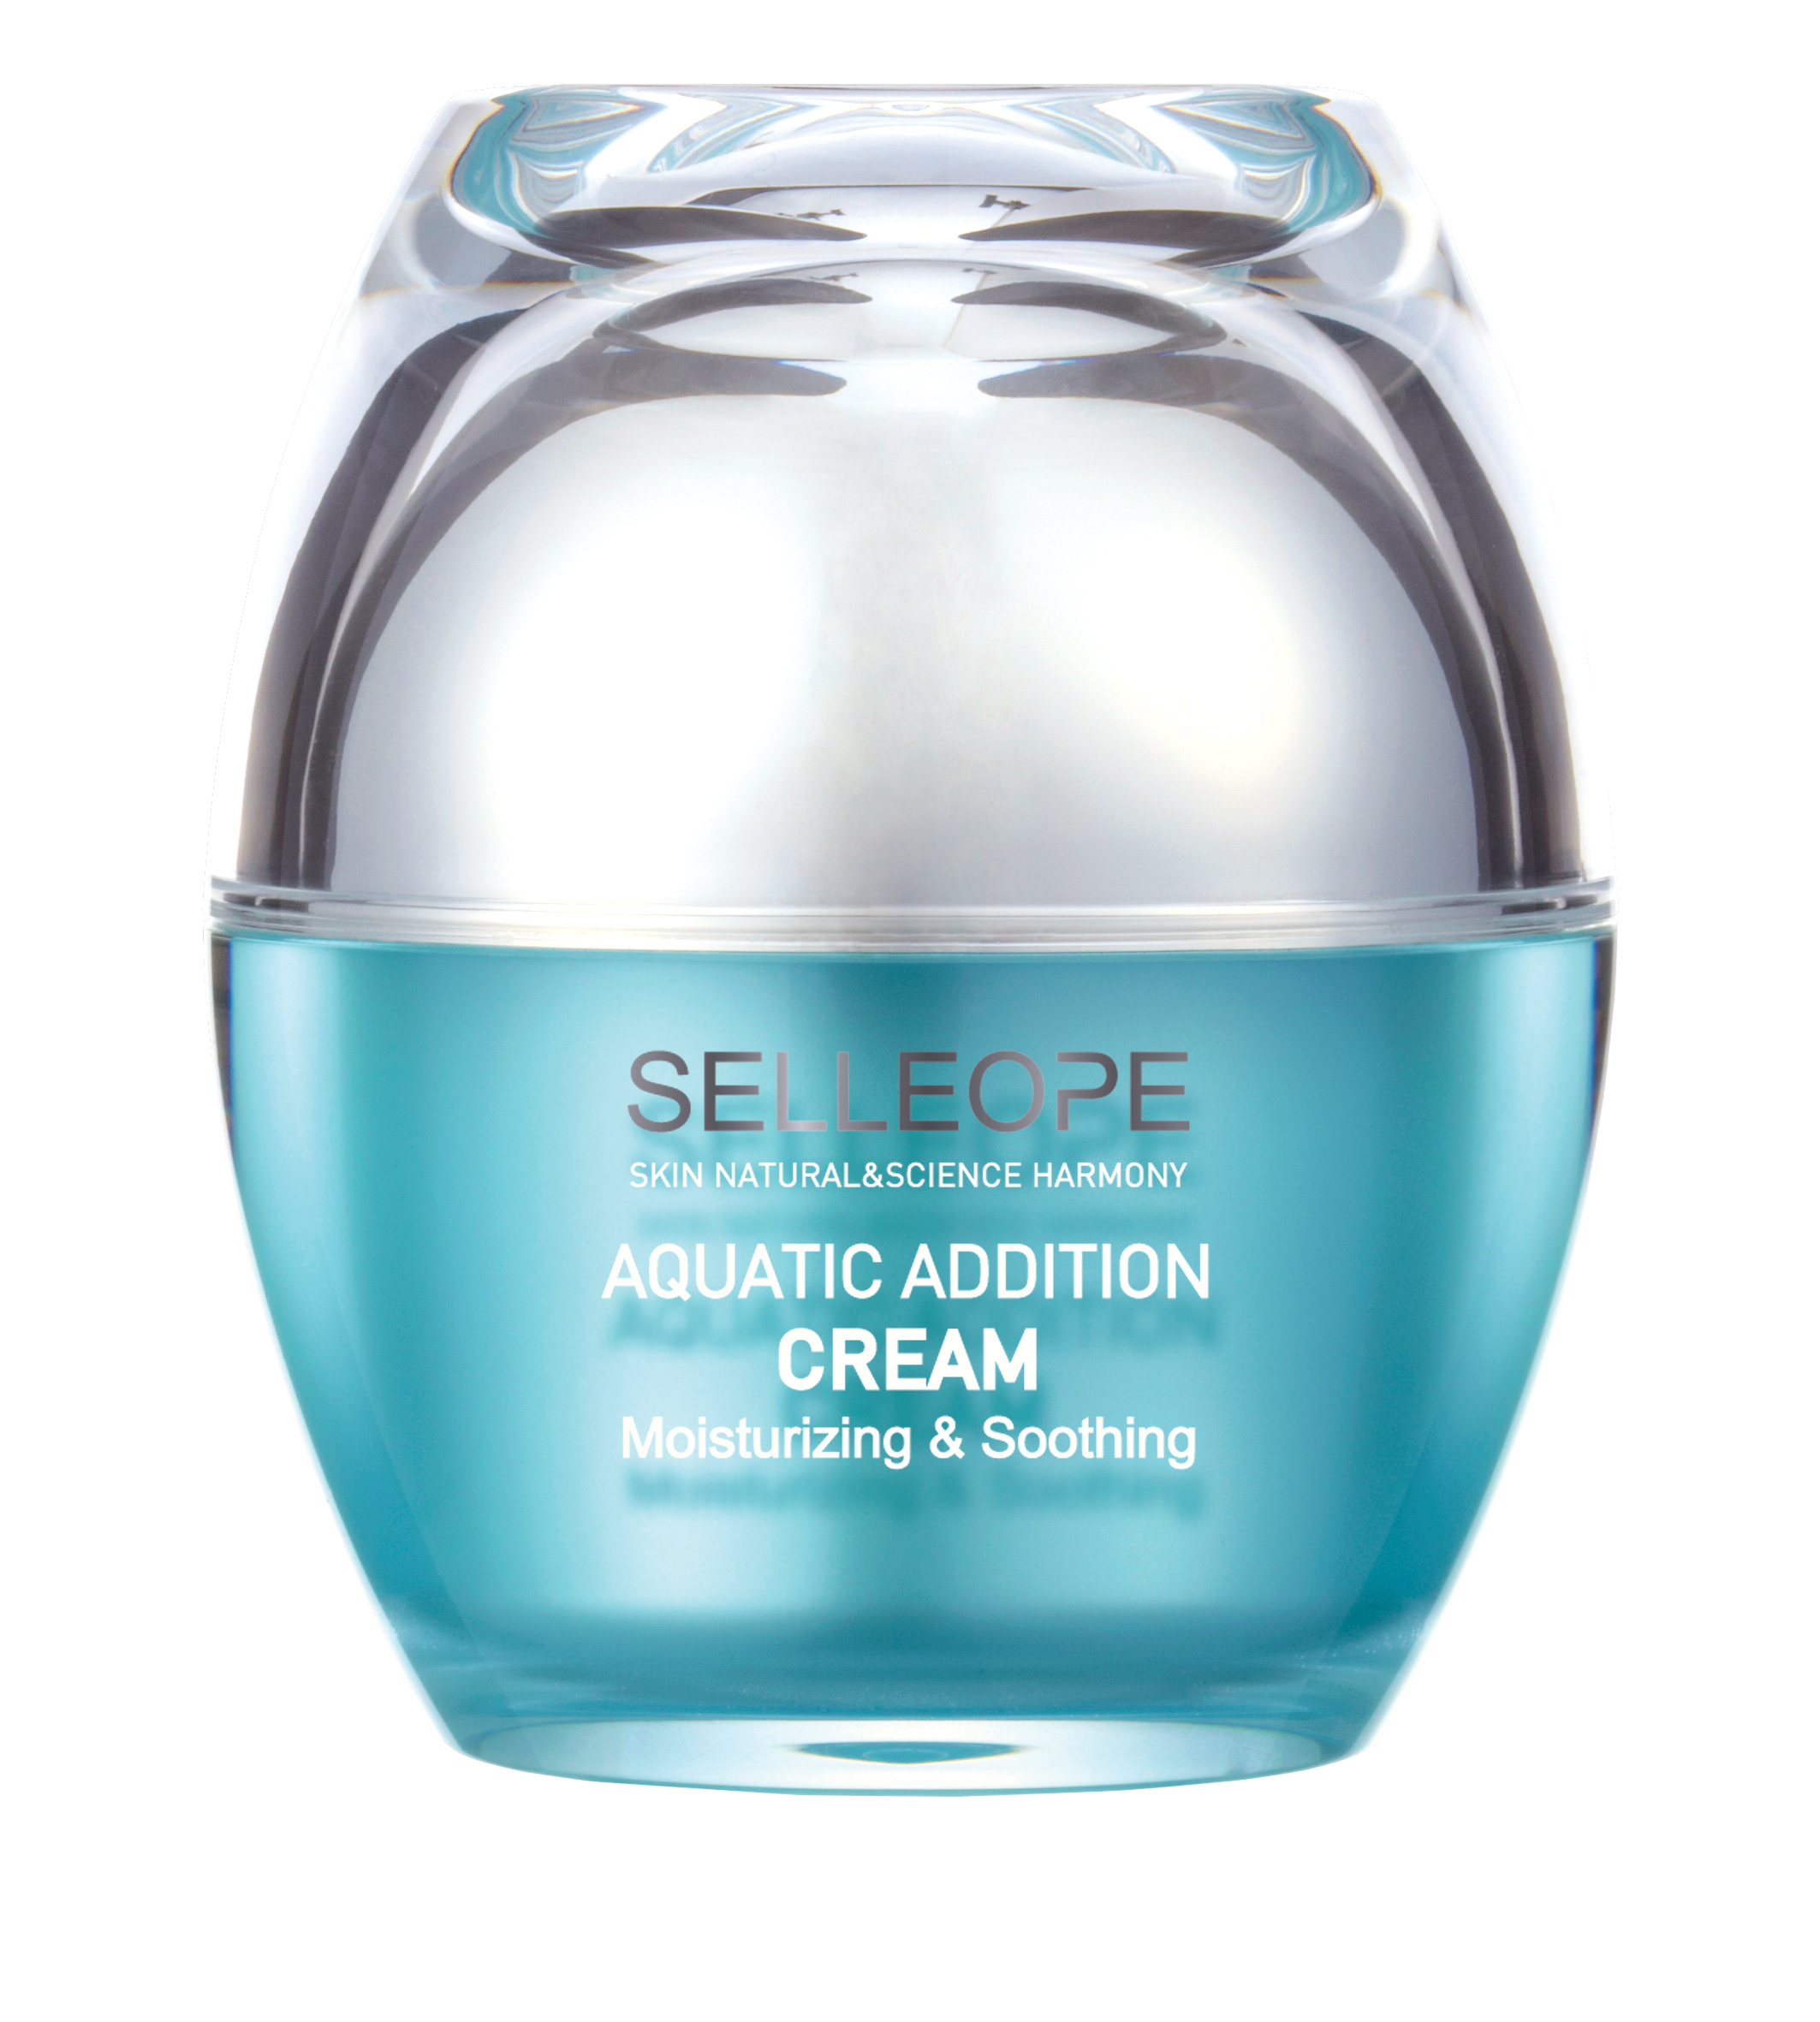 SELLEOPE Aquatic Addition Cream 50ml